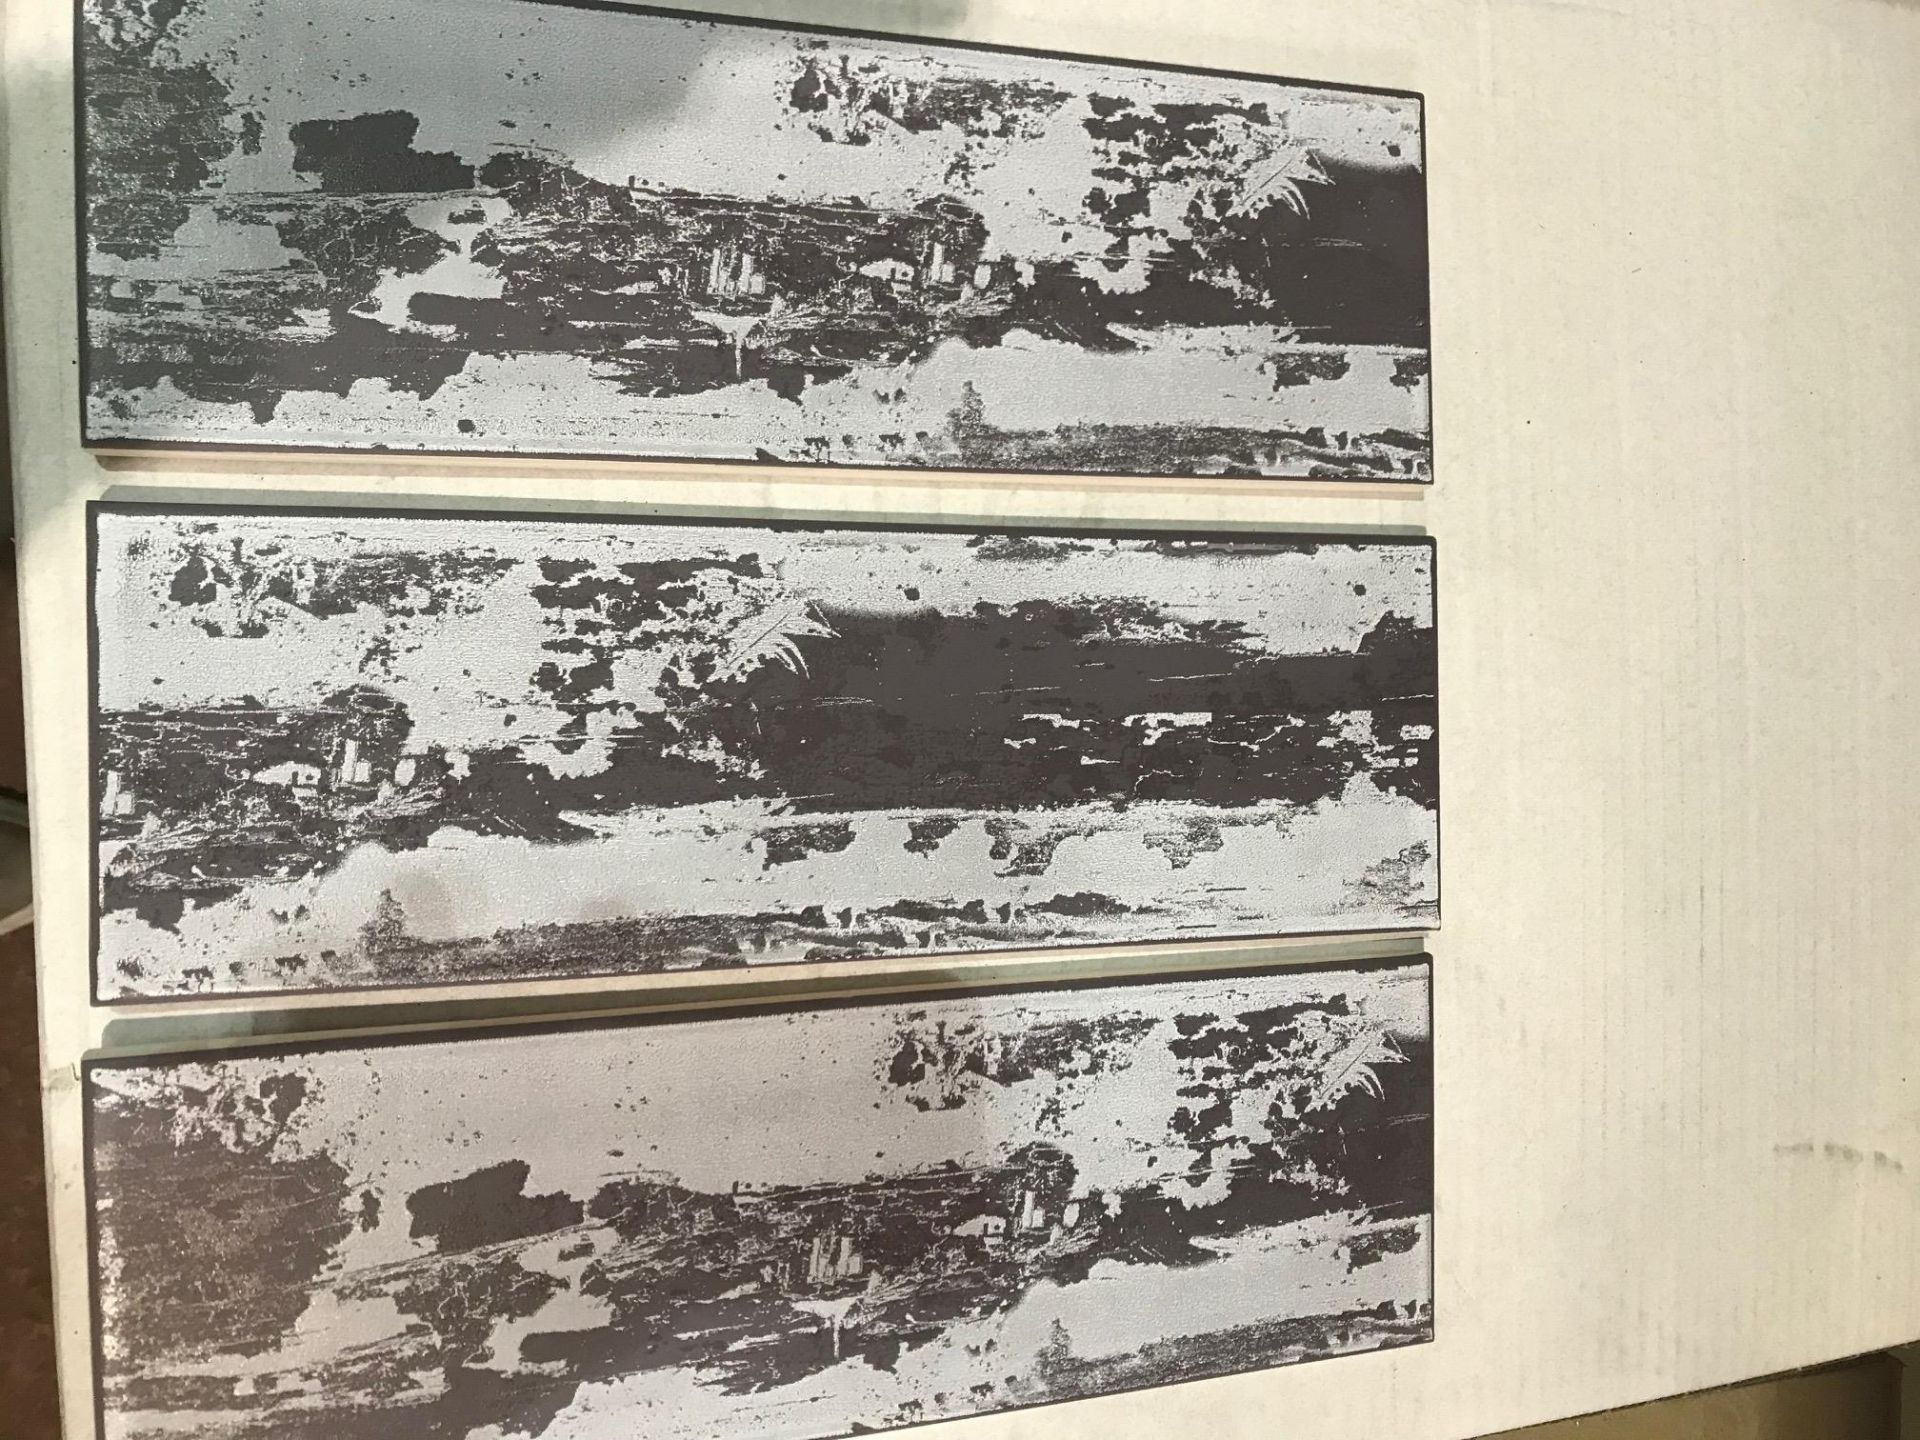 Lot 461 - 5.1m2 Aura Mulberry Satin Ceramic Wall tile. (L)300mm (W)100mm per tile. Influenced by interior...